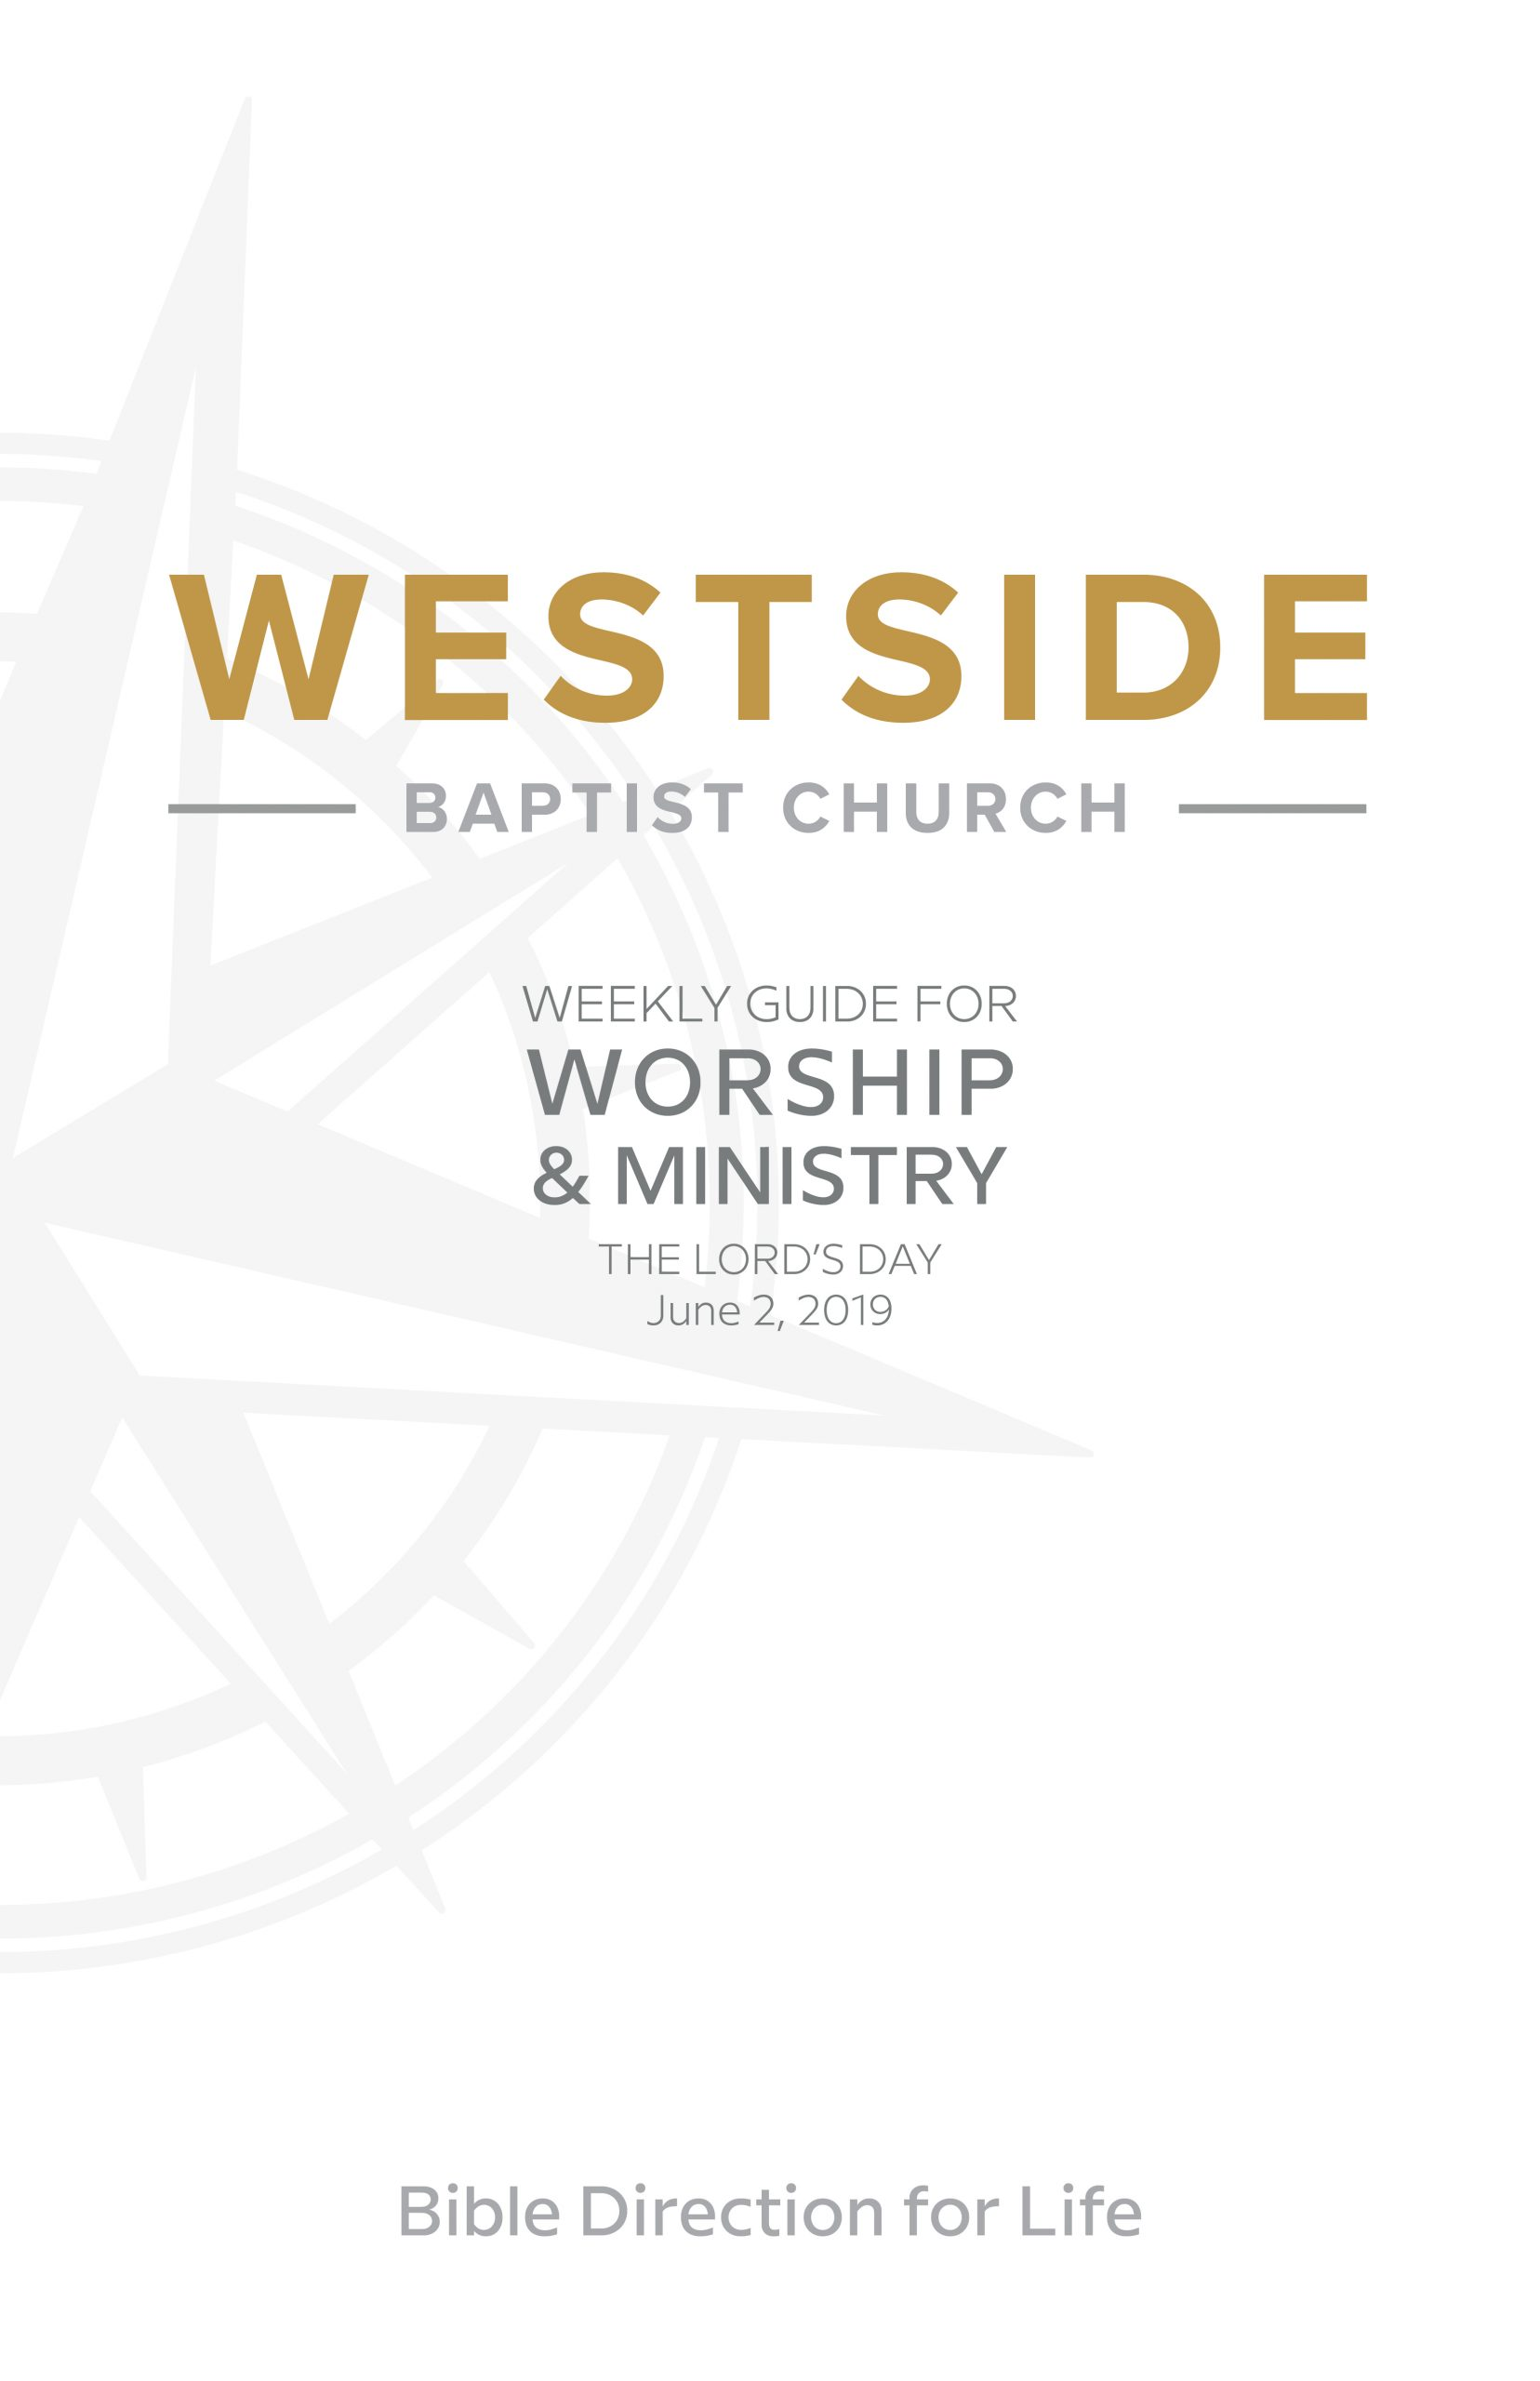 Weekly Guide for Worship and Ministry—June 2